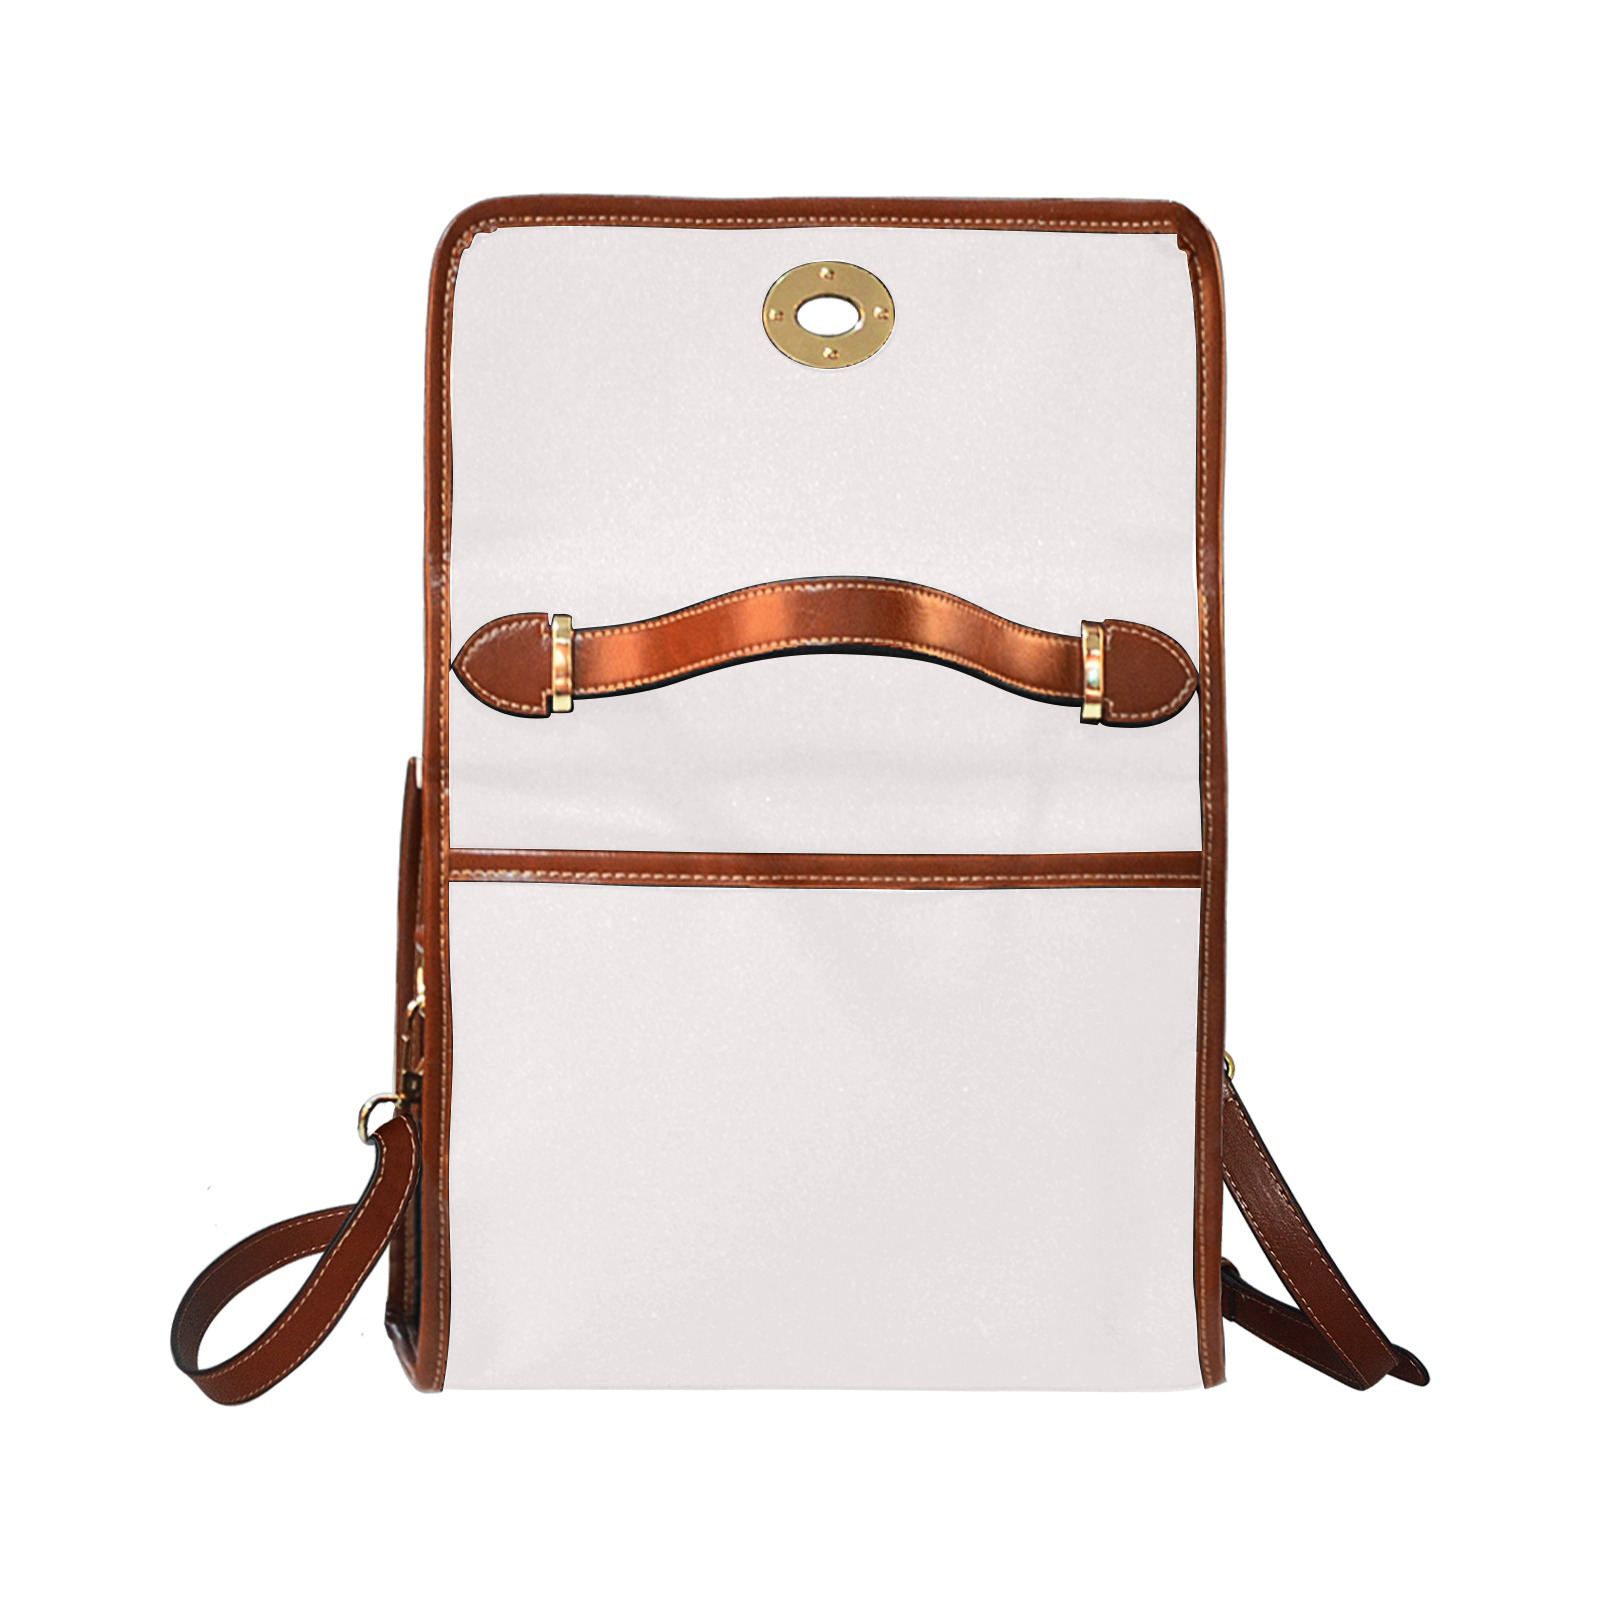 Waterproof Canvas Bag-Brown (All Over Print) (Model 1641)